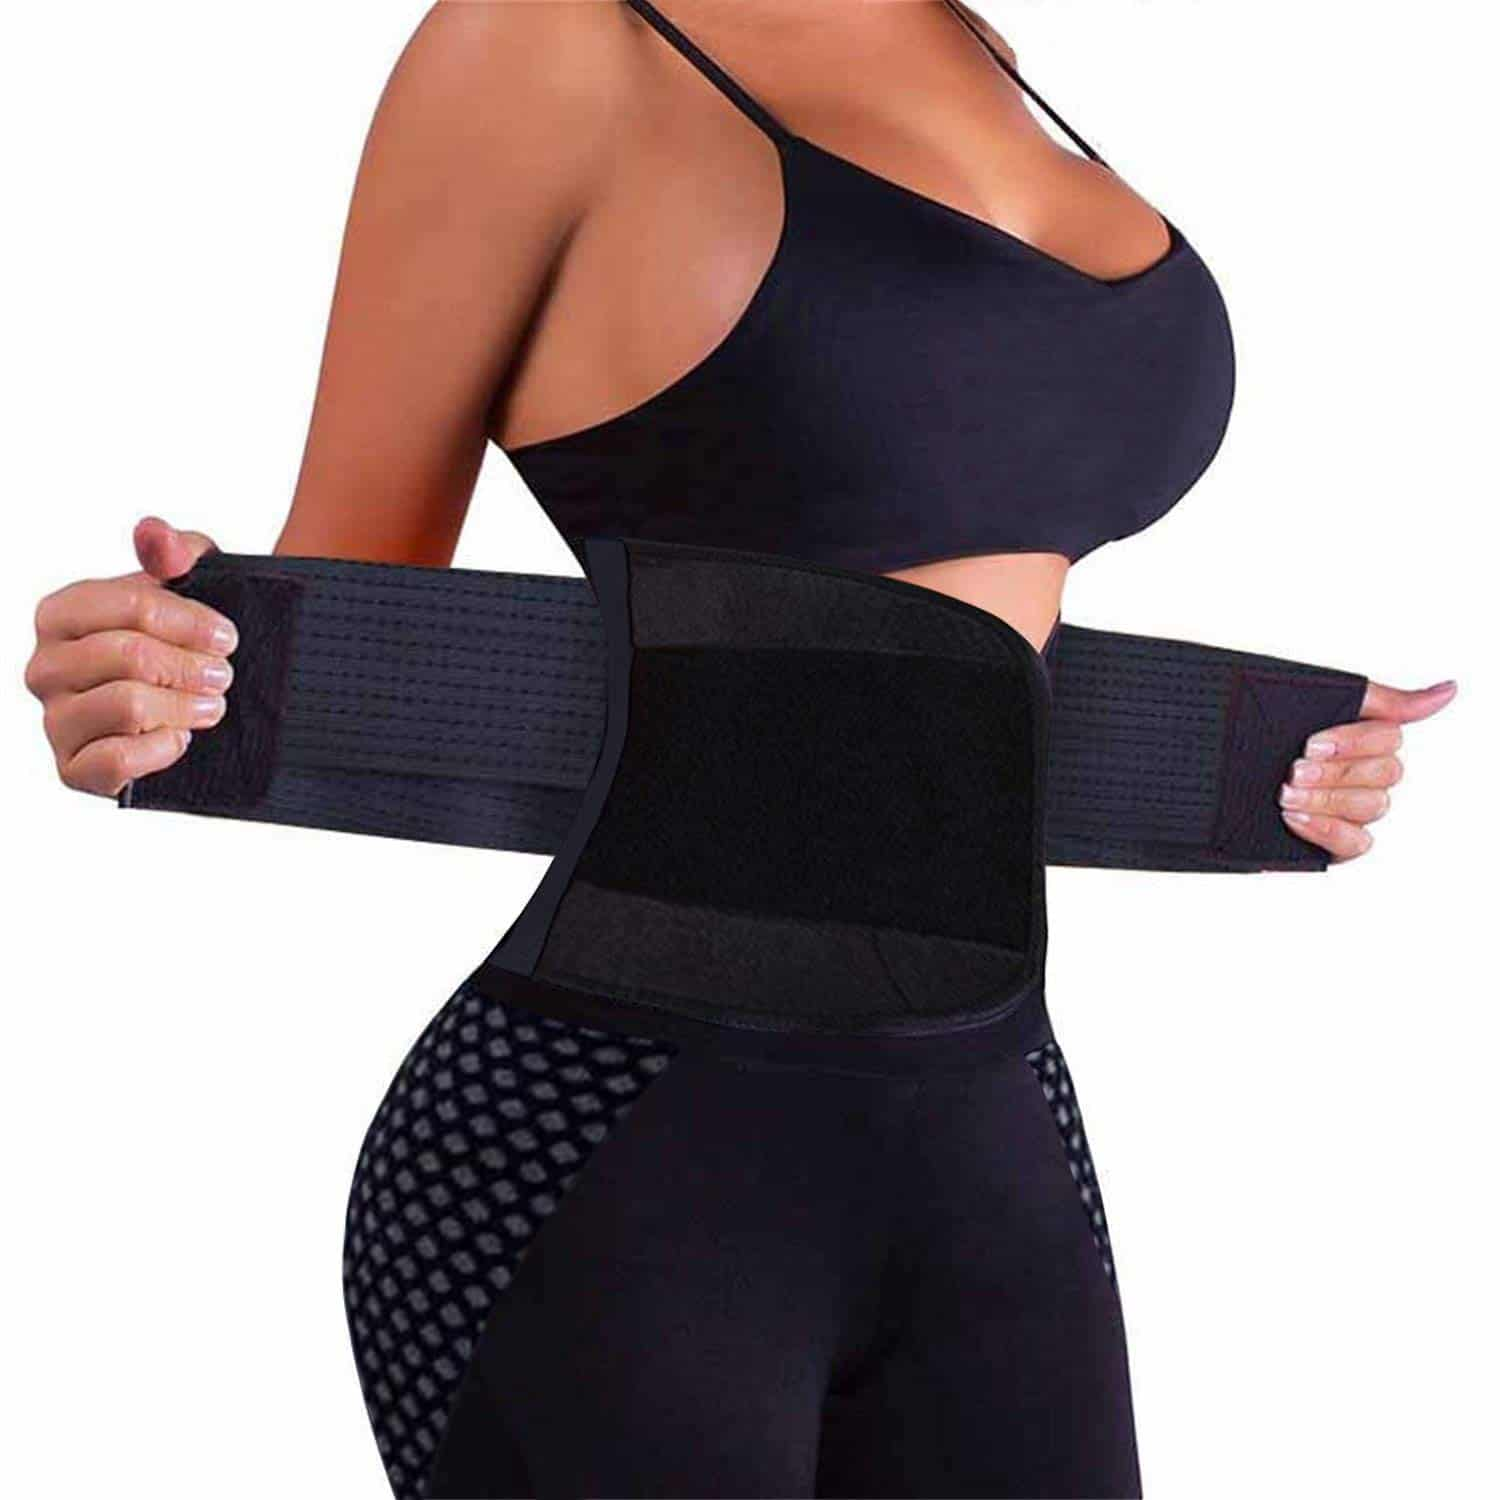 VENUZOR Women's Waist Trainer Belt